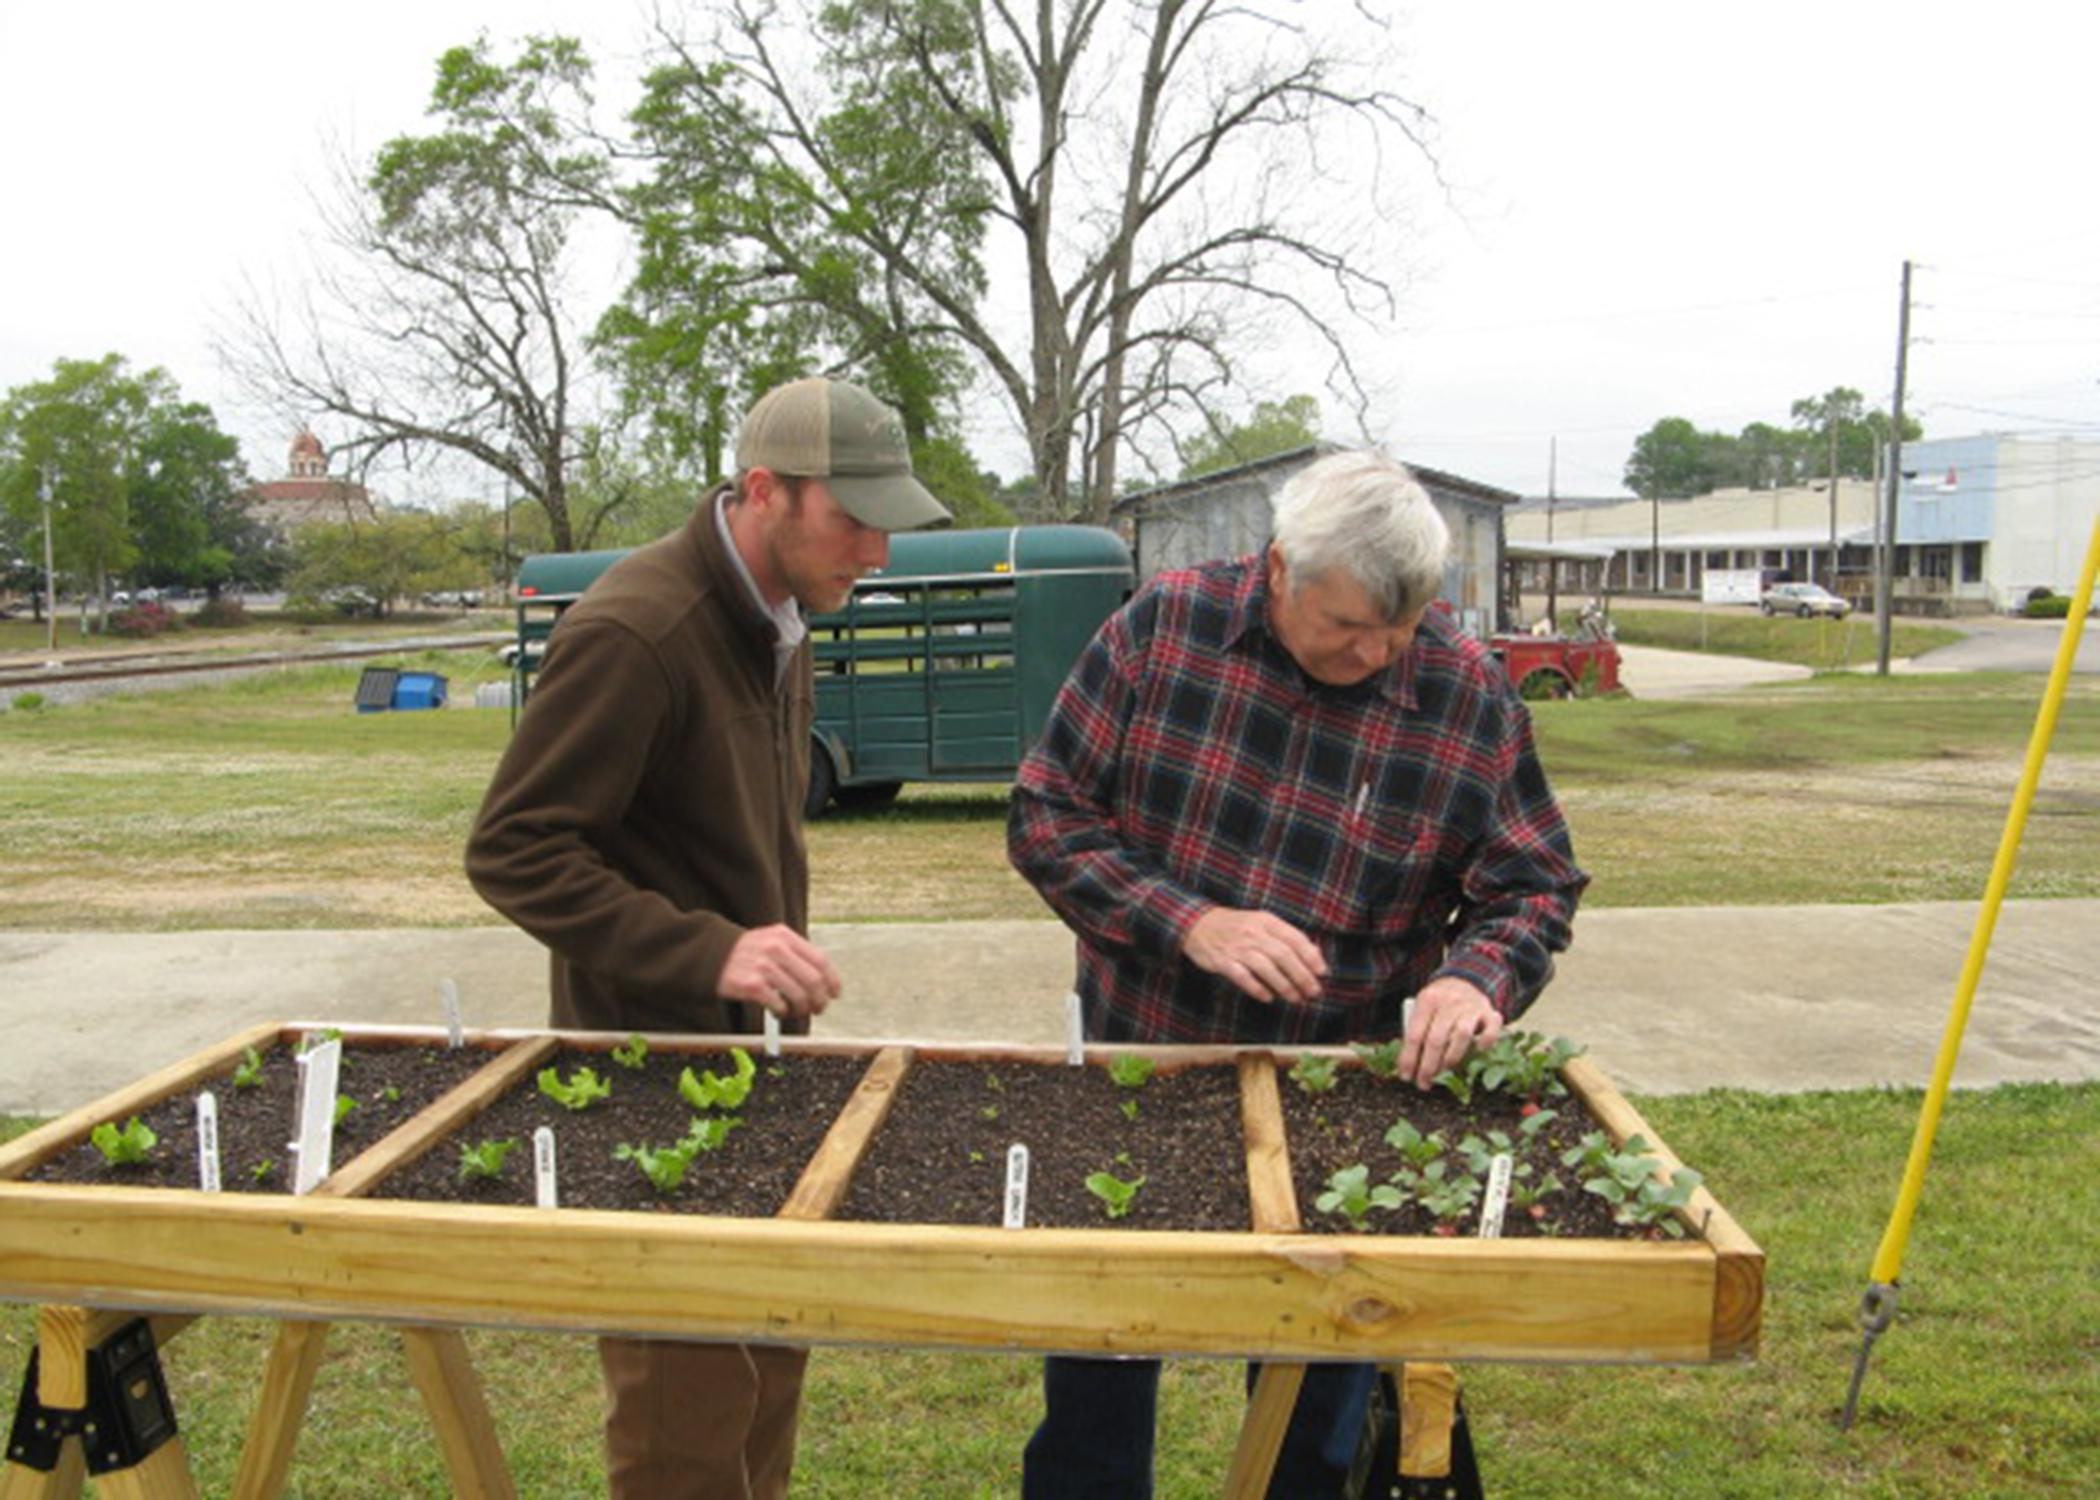 Ross Overstreet, Mississippi State University Extension agent in Lamar County, and Pine Belt Master Gardener Paul Cavanaugh check the progress of plants in the first demonstration salad table in 2013. The project grew in popularity and recently earned the Master Gardeners an international award for excellence. (File photo by MSU Extension Service/Liz Sadler)